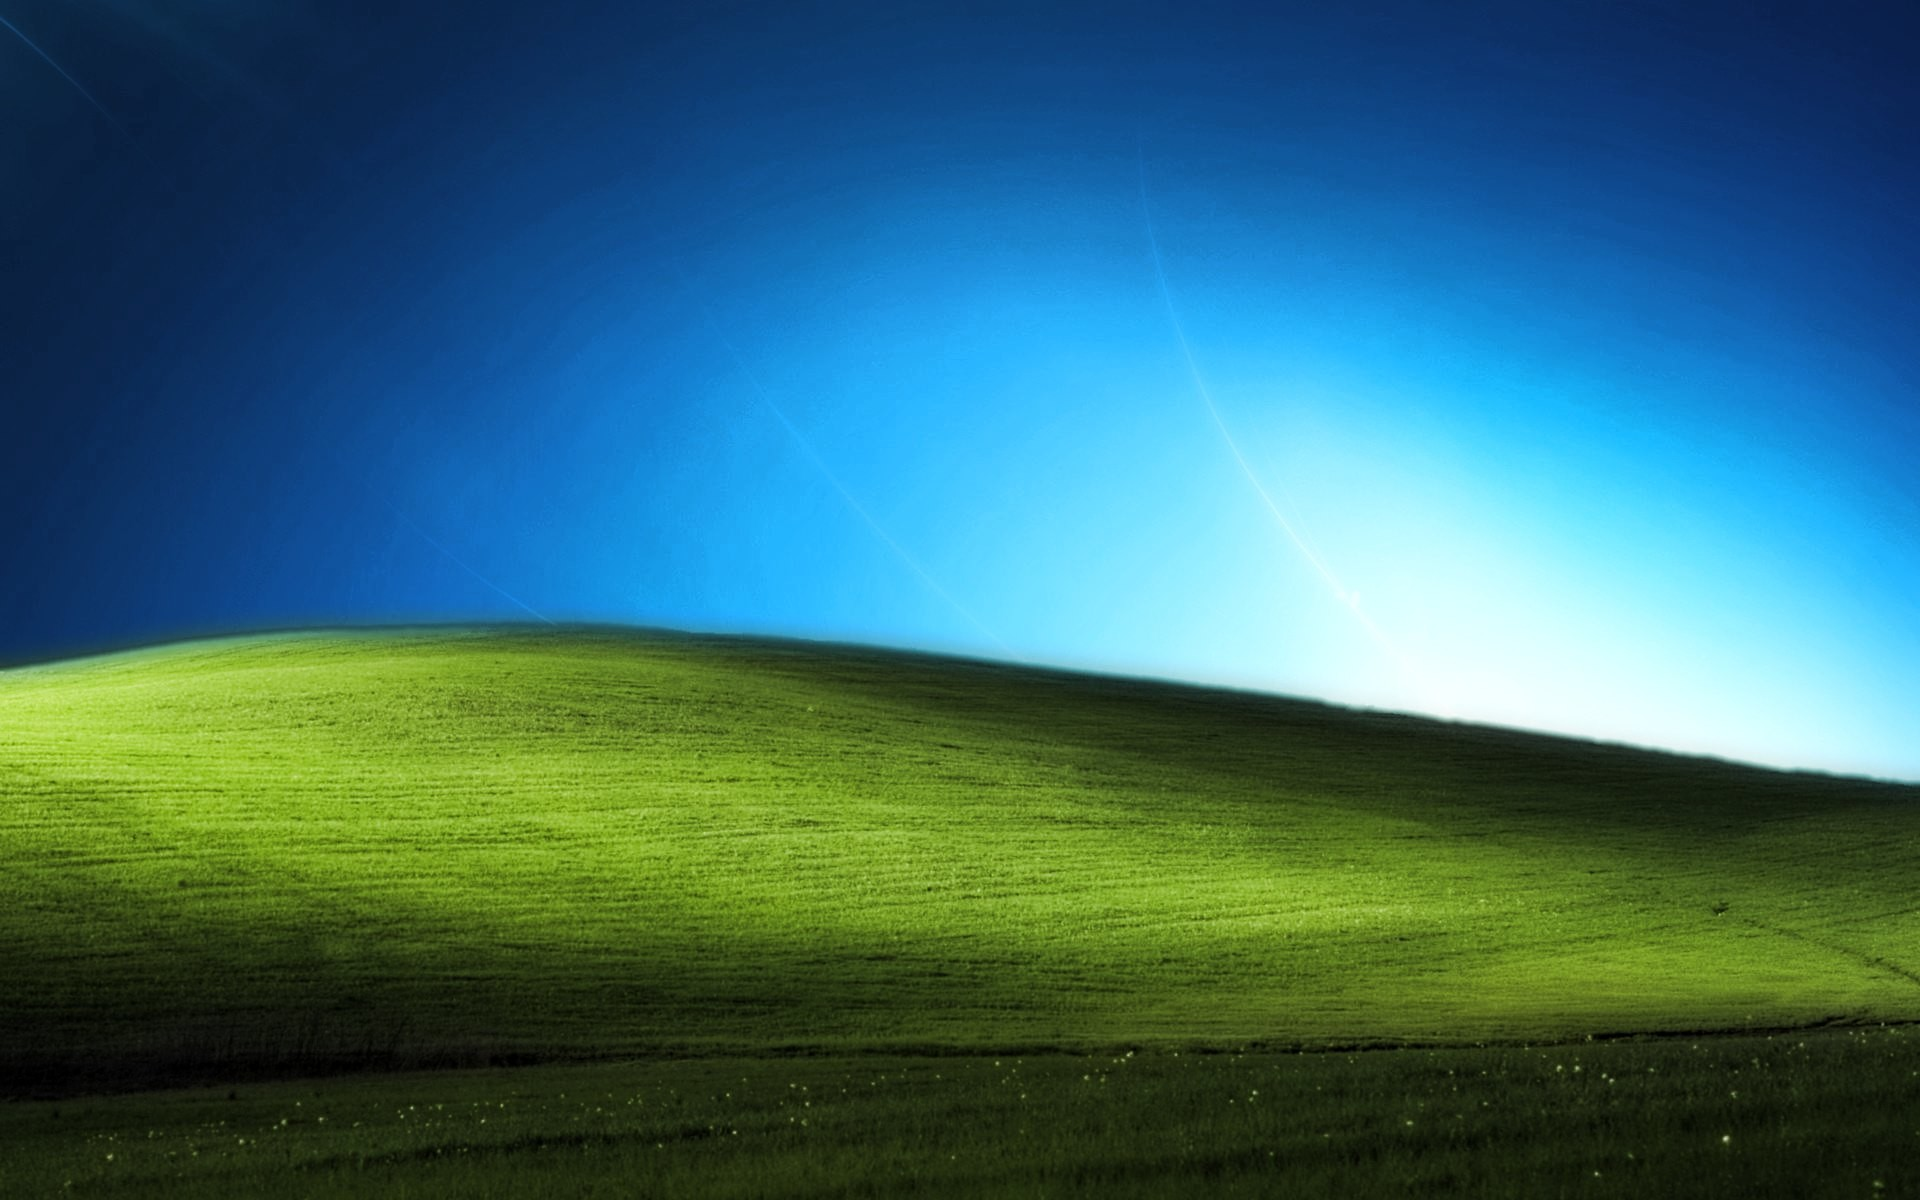 Windows Xp Screensaver For Windows : Windows xp wallpapers high quality  download free